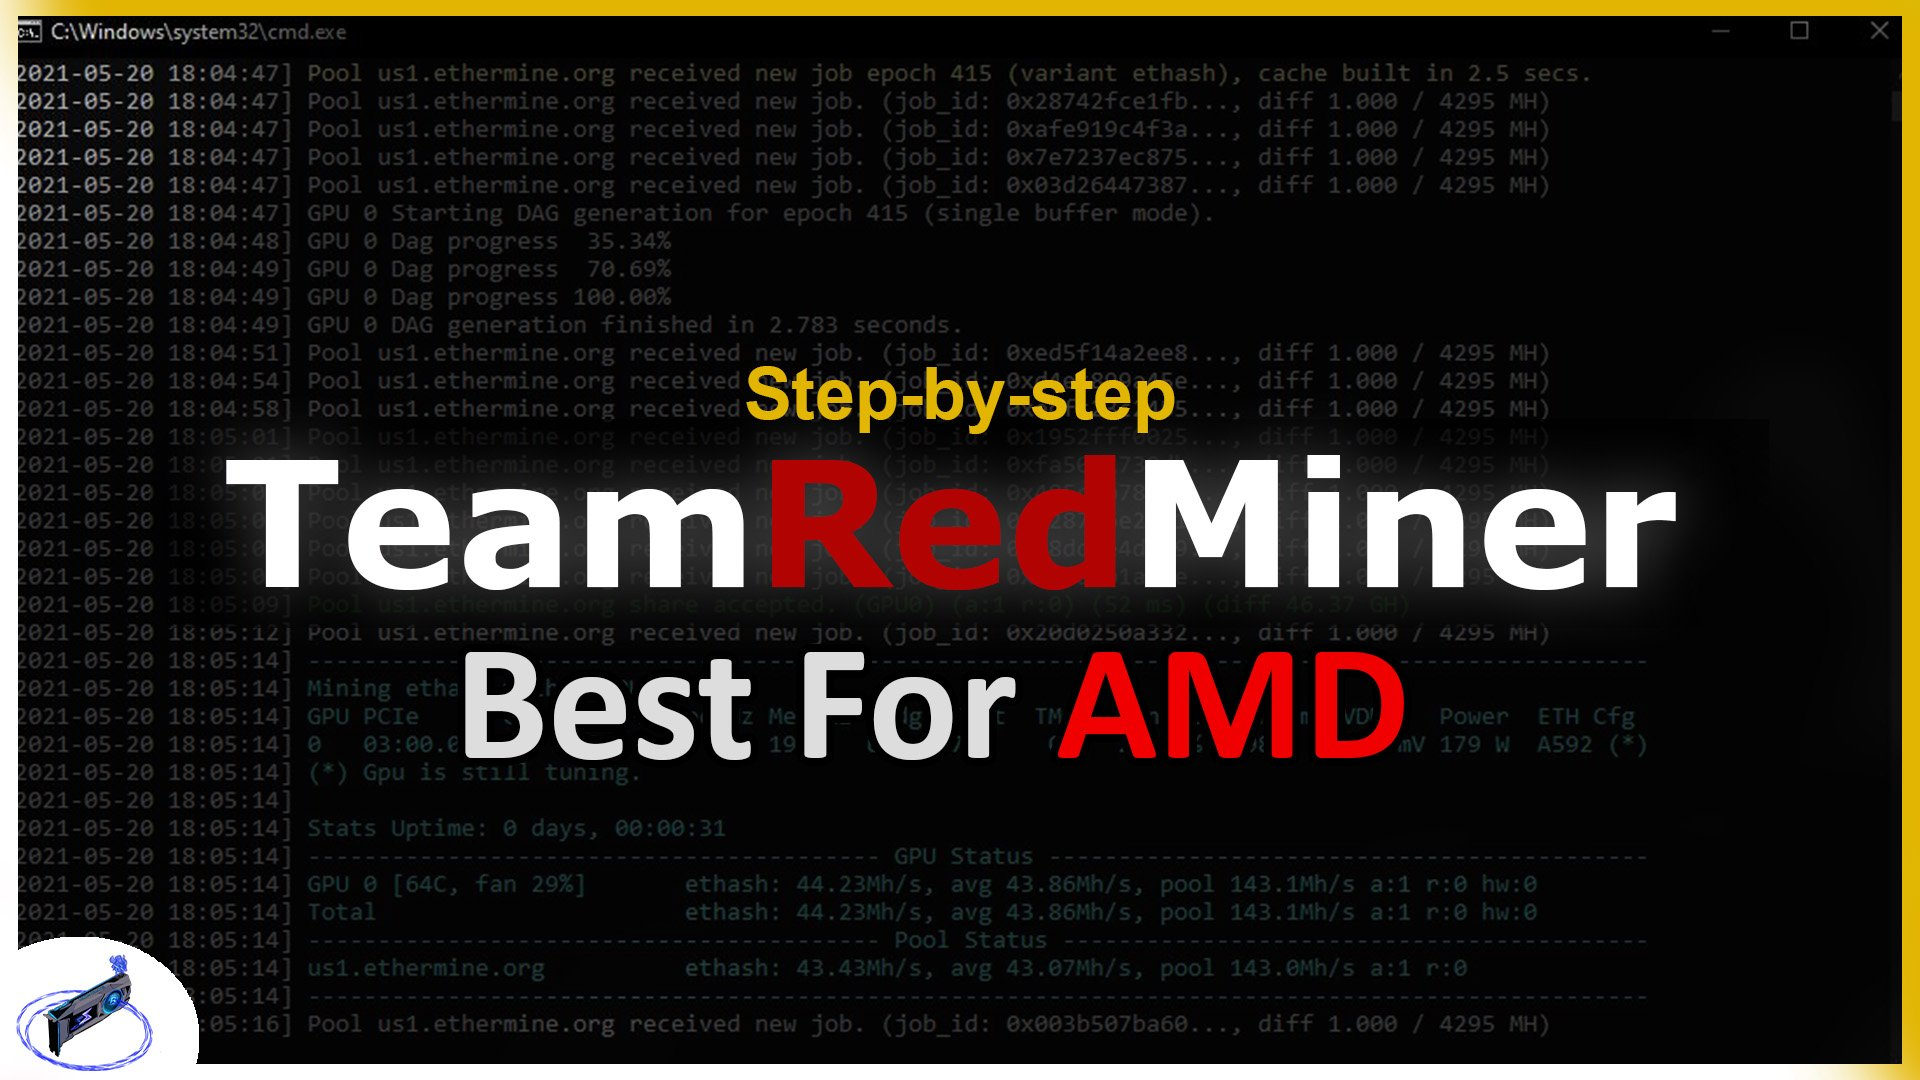 How To Use TeamRedMiner - Step-by-step Tutorial